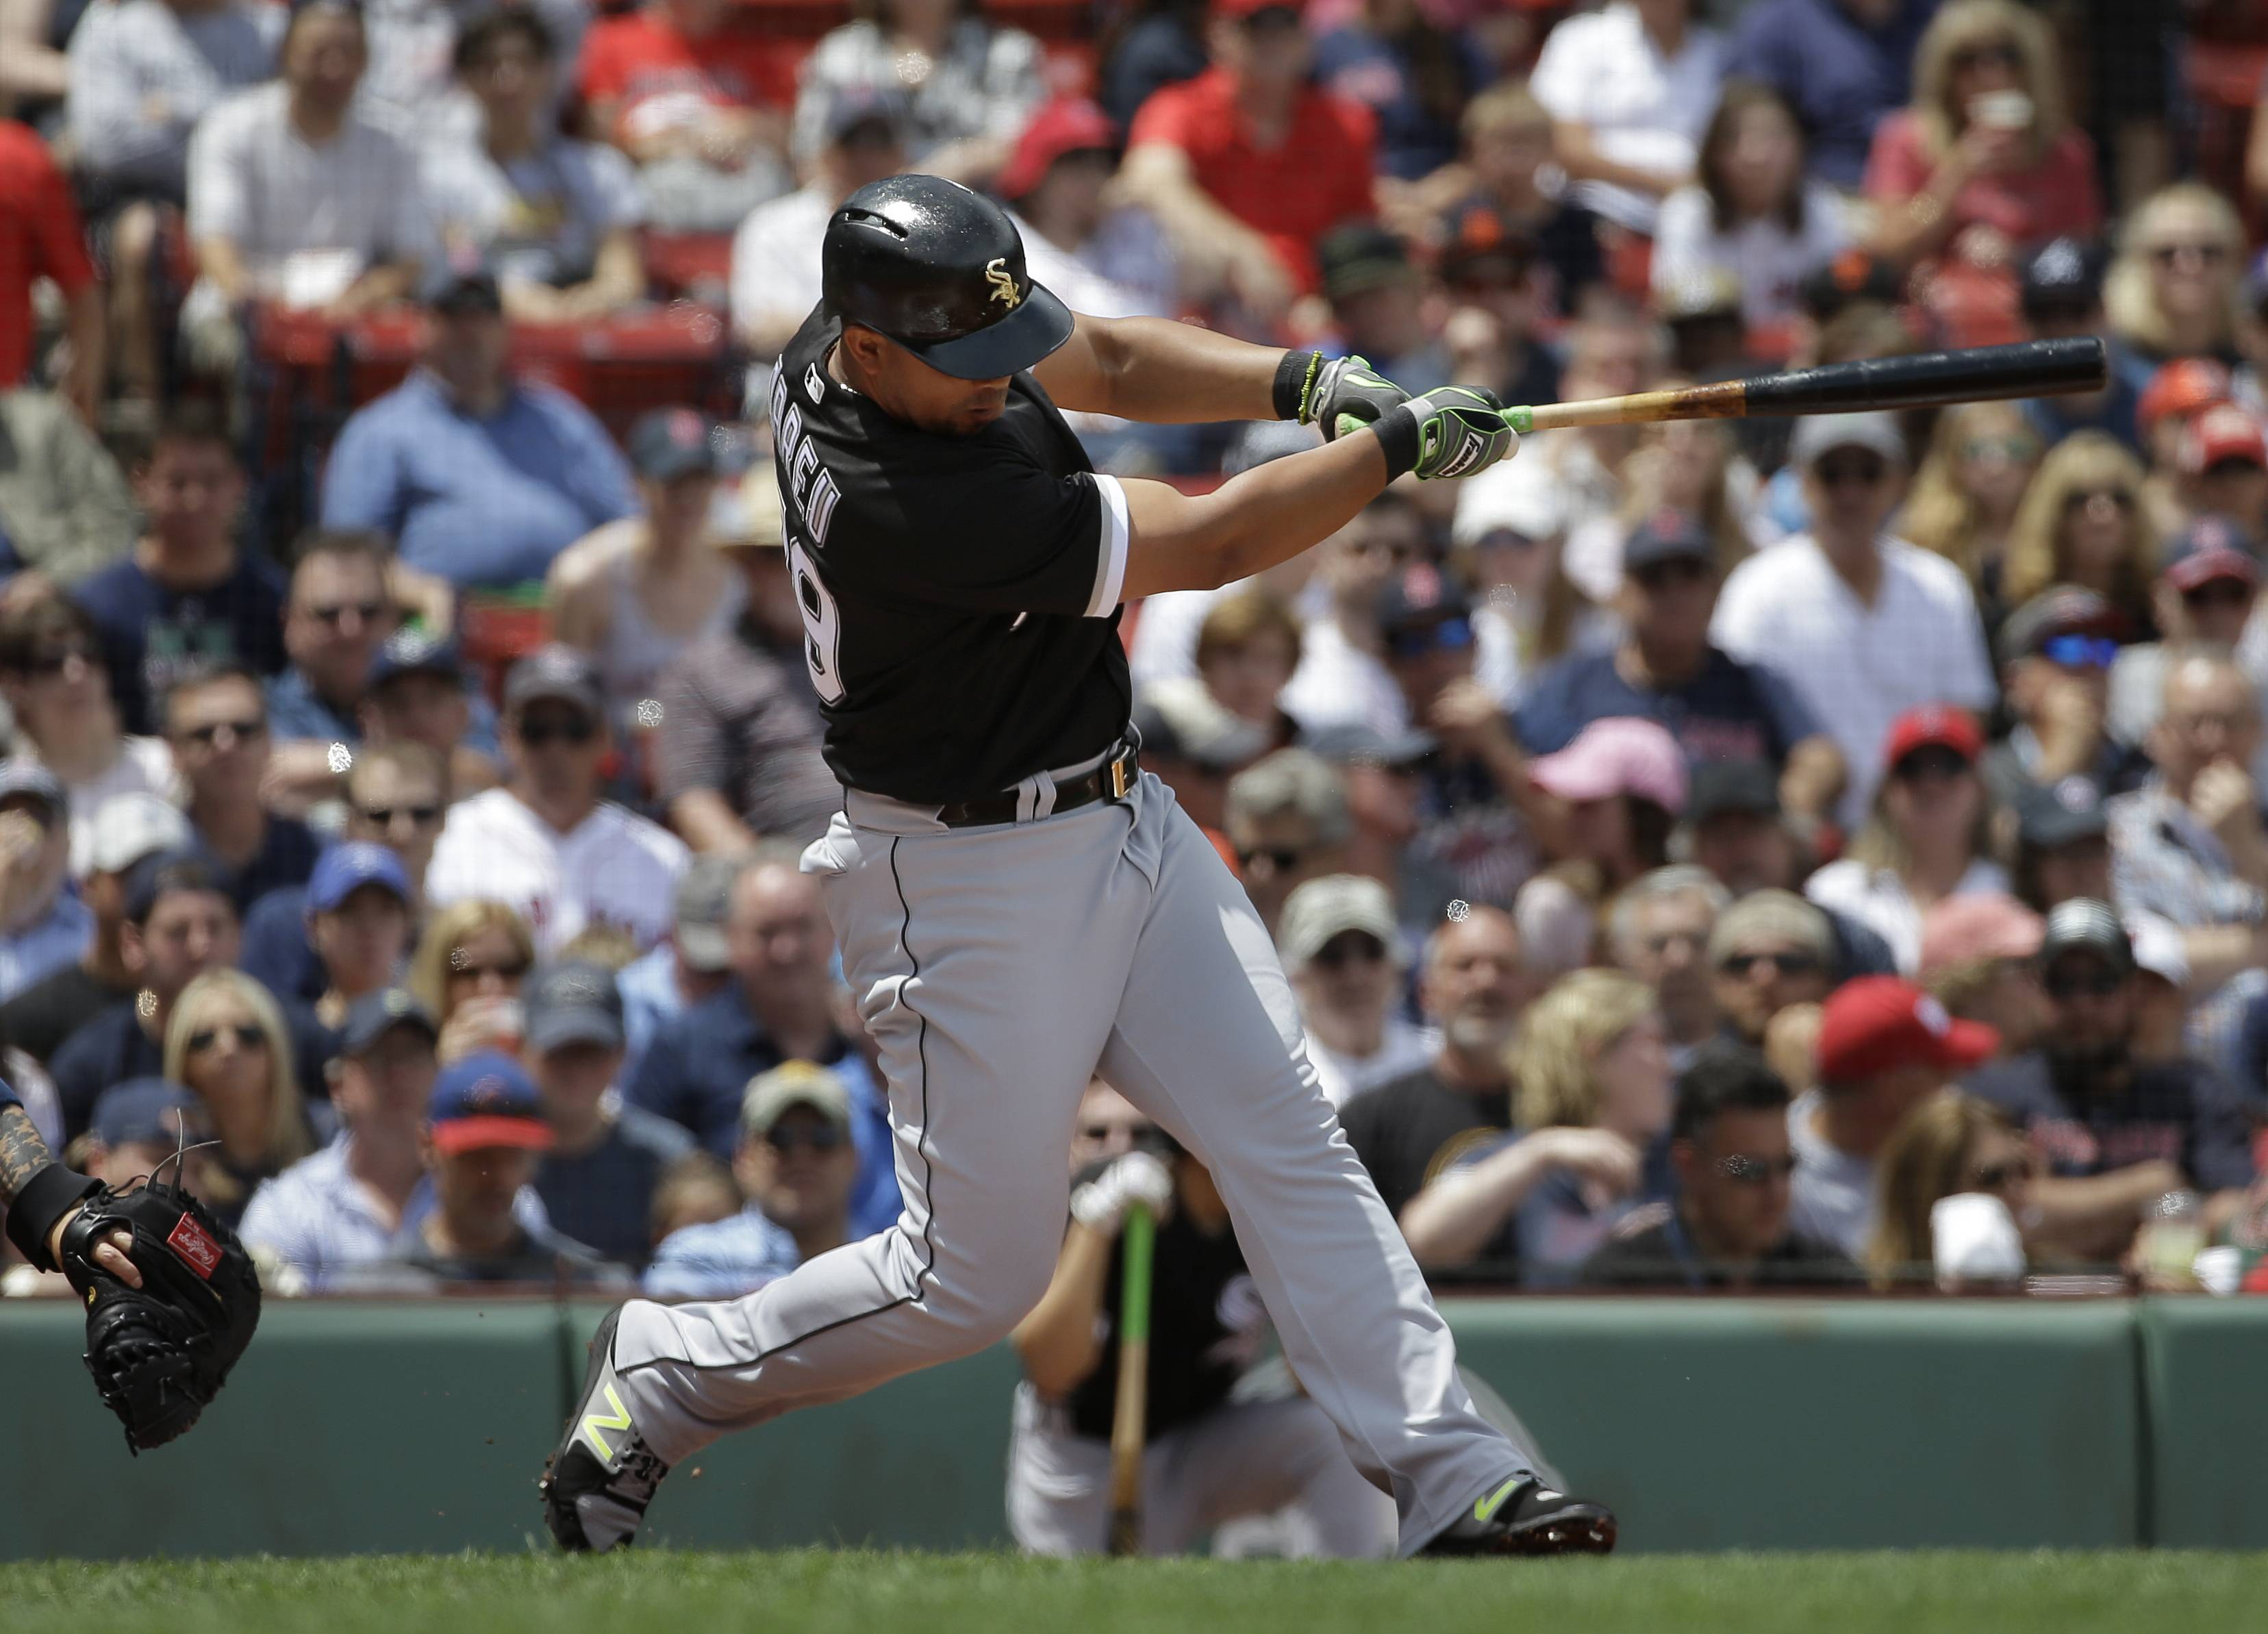 Abreu is Chicago White Sox's undispute shining star